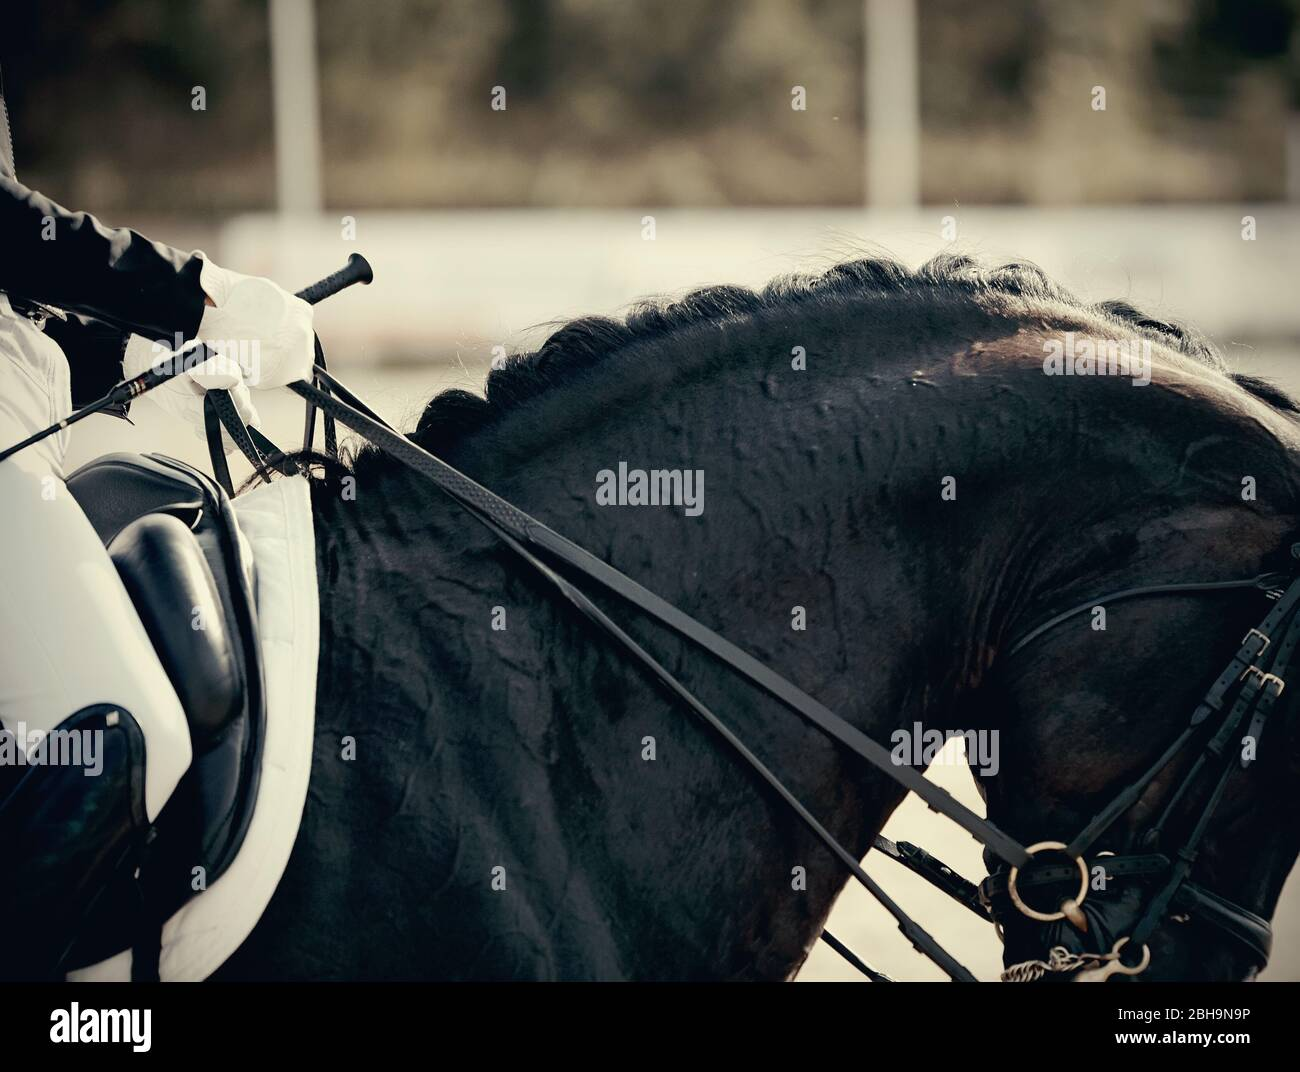 Neck Sports Black Horse In The Double Bridle Dressage Of Horses Equestrian Sport Stock Photo Alamy